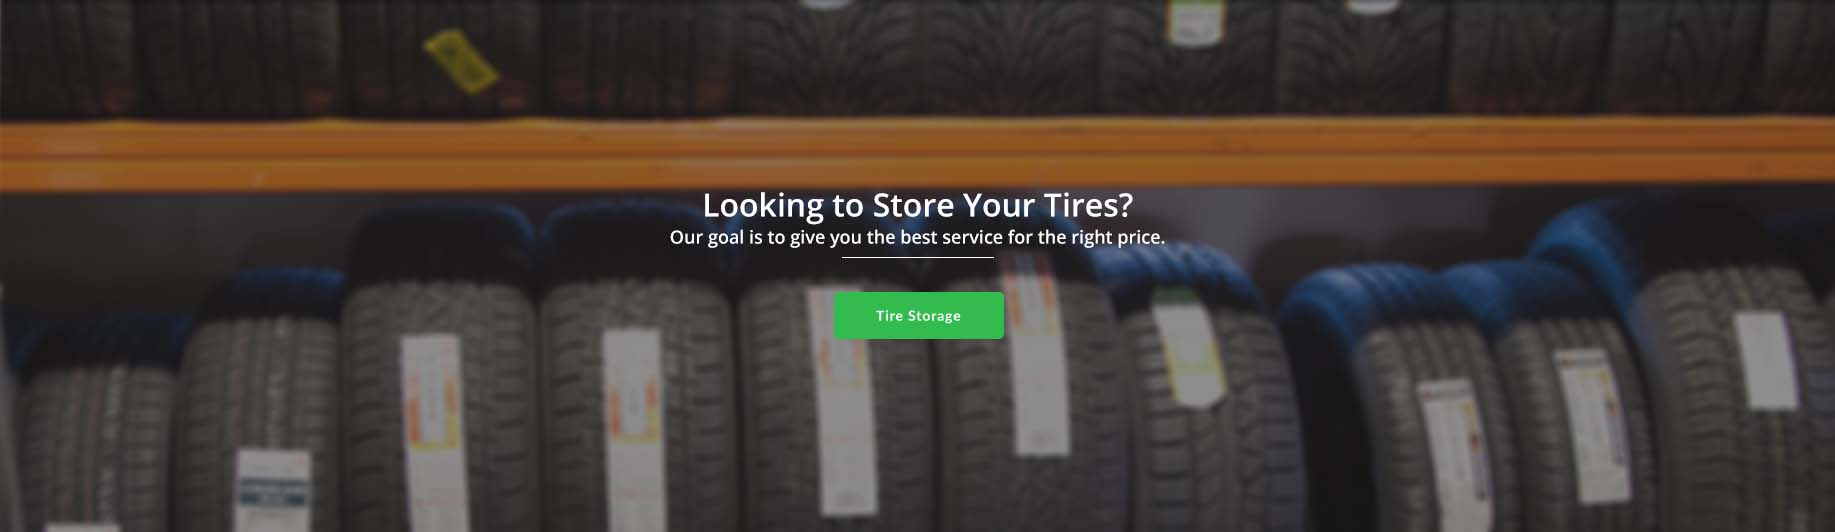 milton-tire-storage1